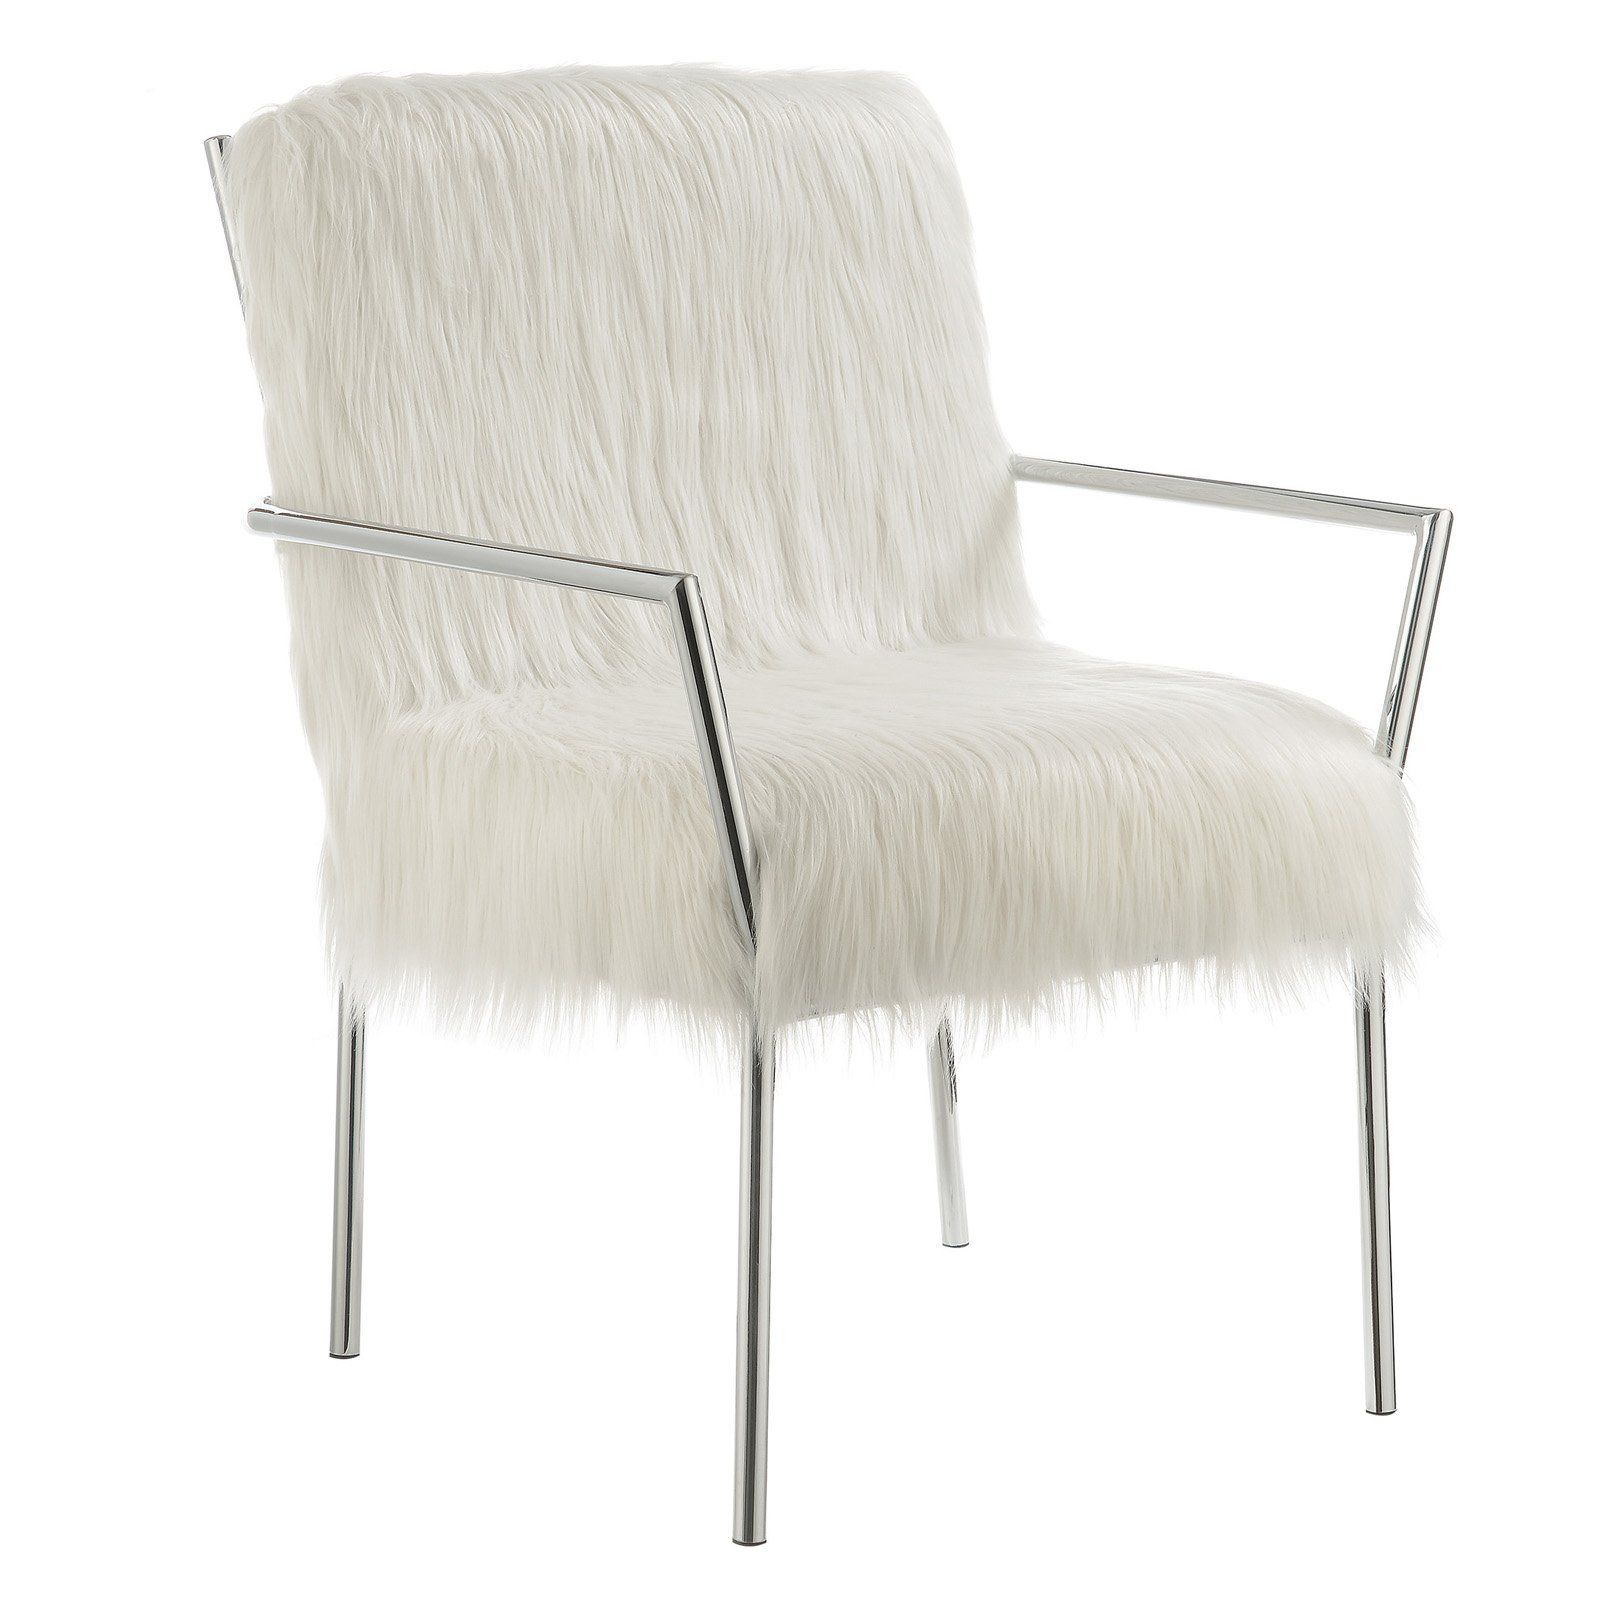 Magnificent Coaster Furniture Fluffy Metal Accent Chair In 2019 White Ibusinesslaw Wood Chair Design Ideas Ibusinesslaworg